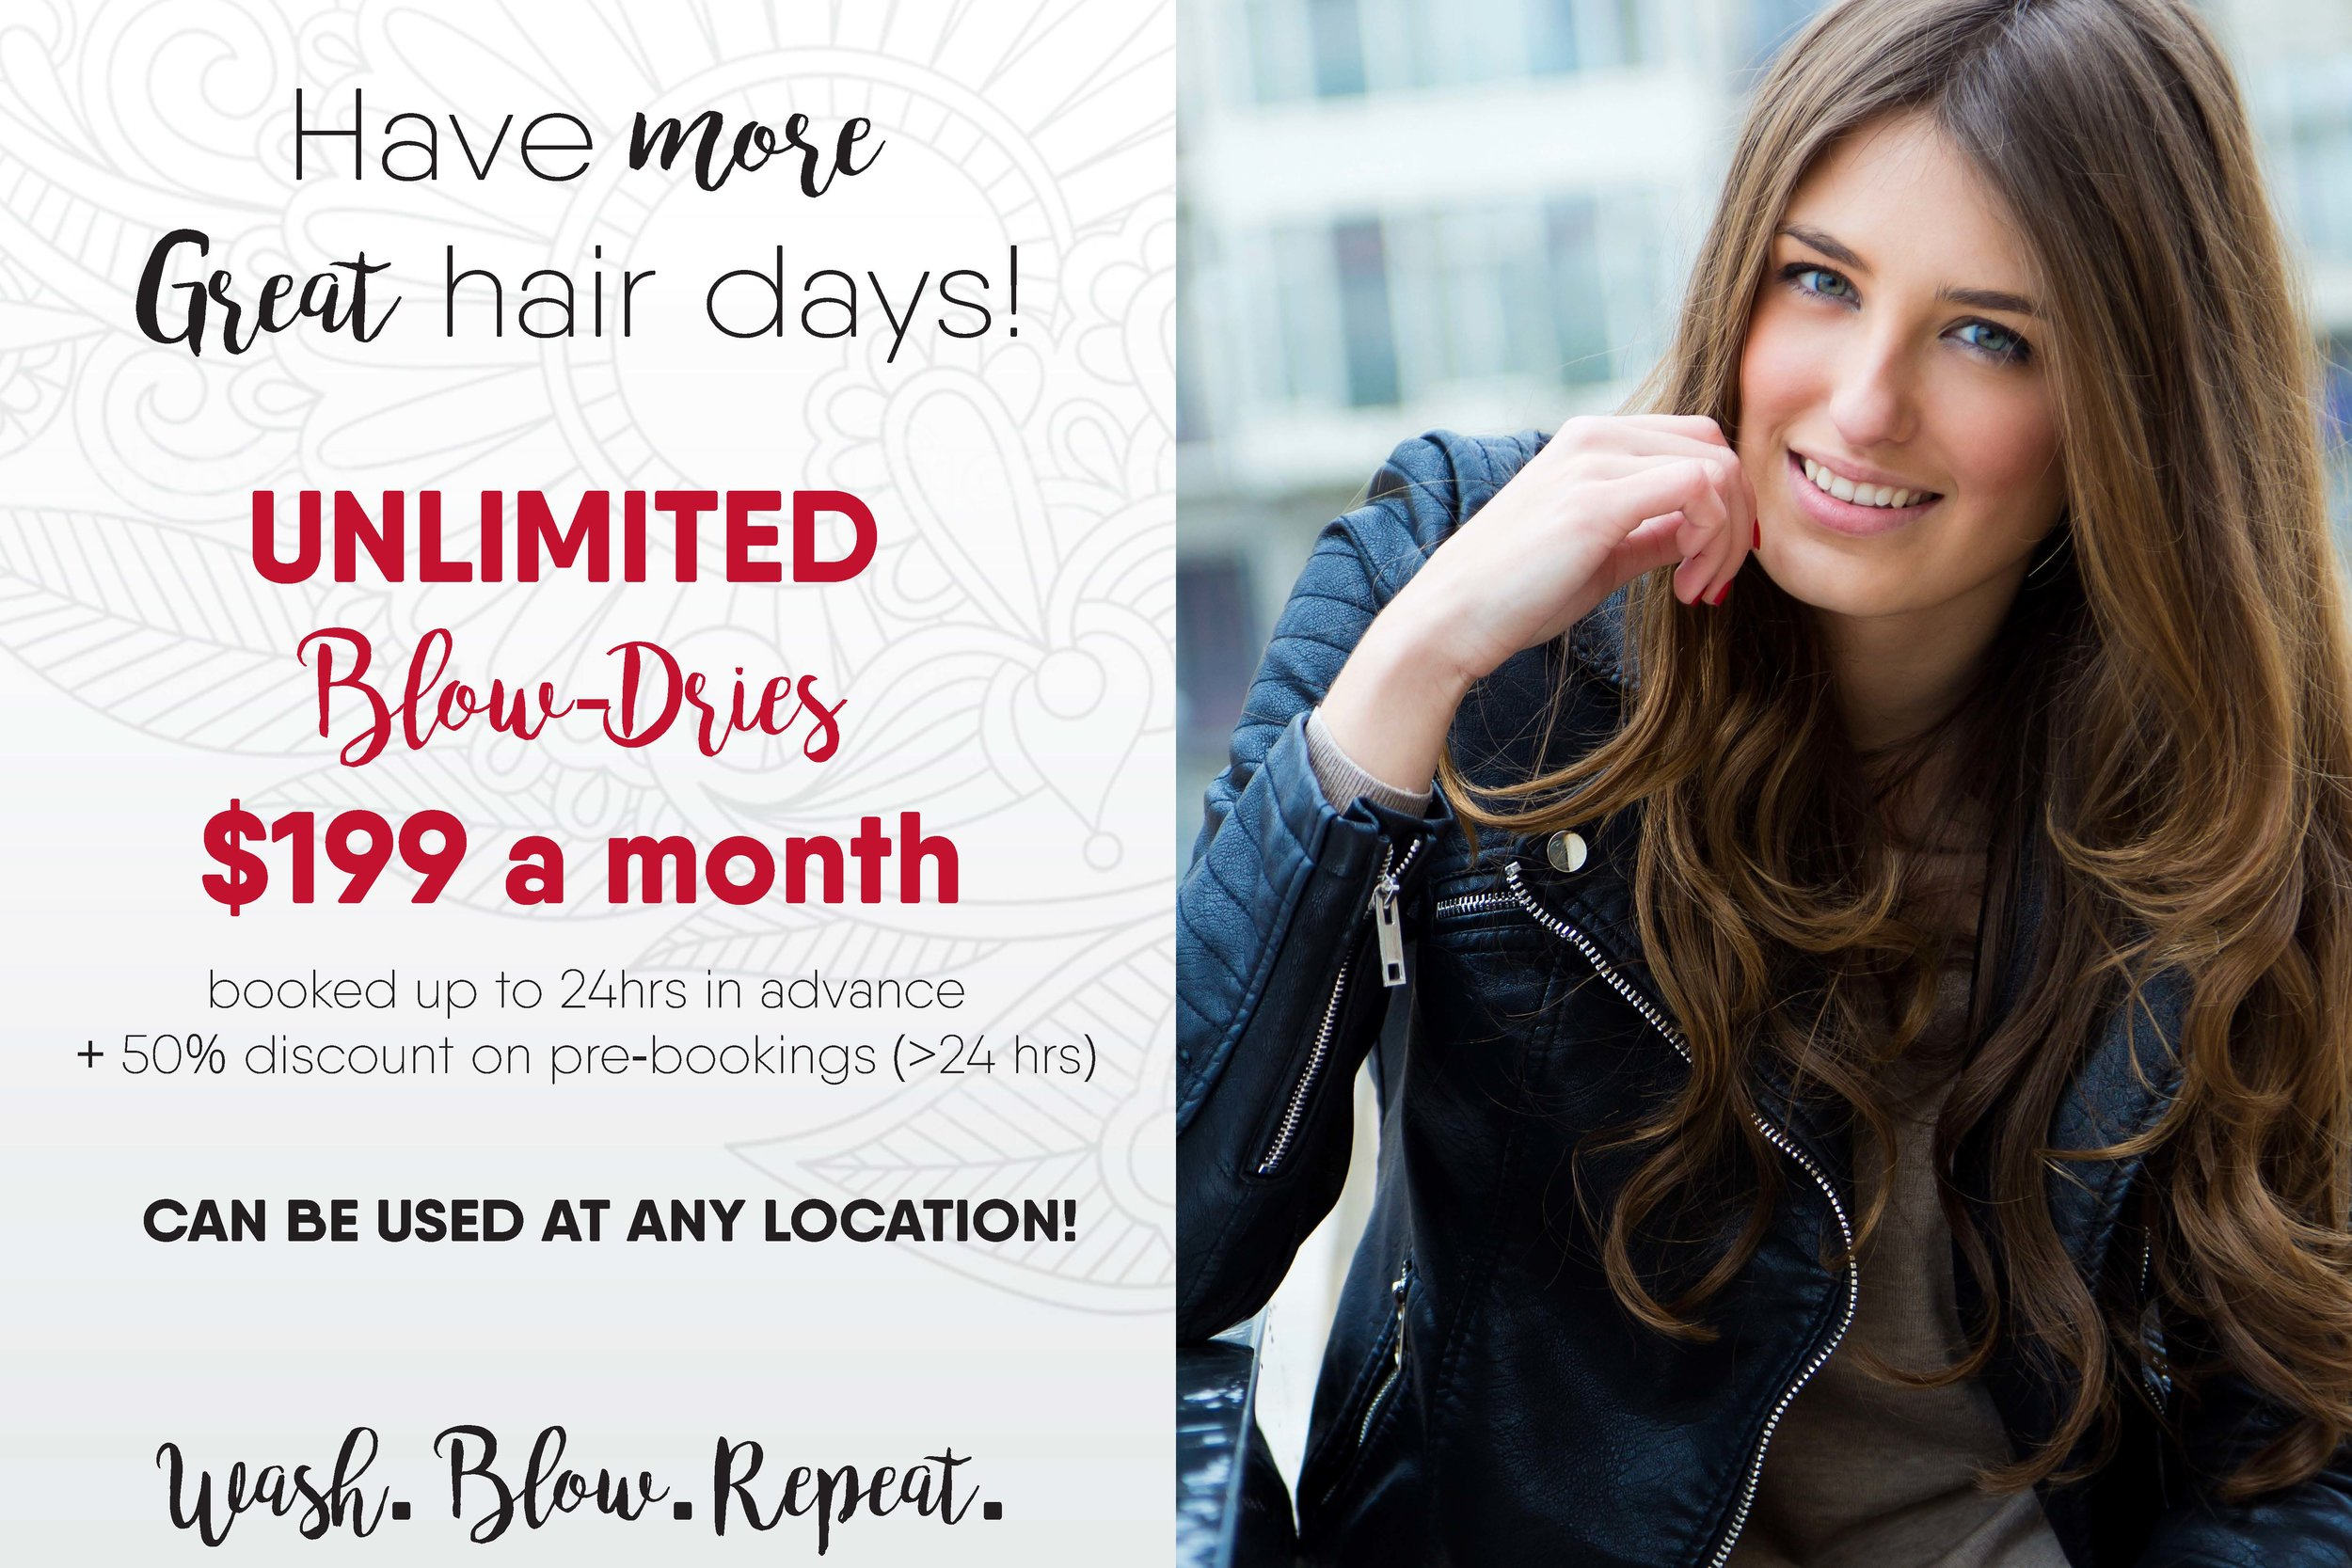 Unlimited blow-dry package